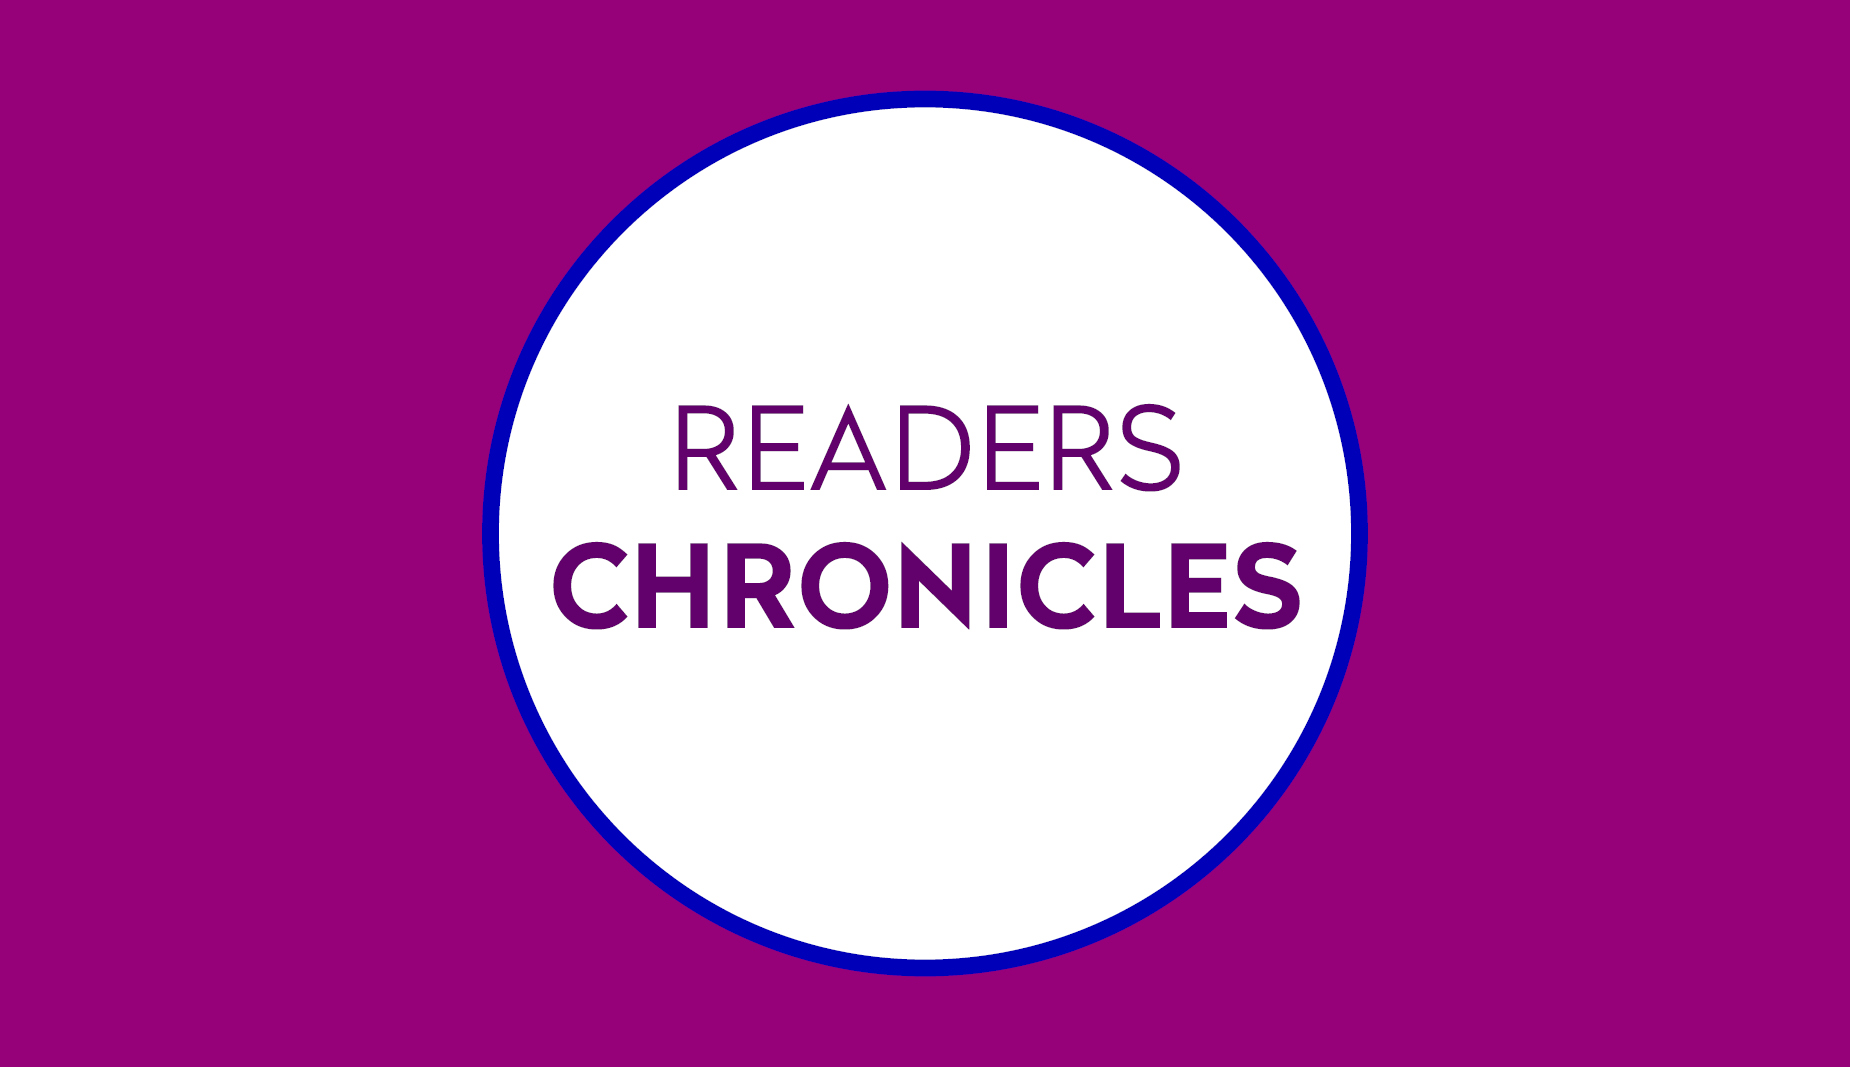 Readers Chronicles